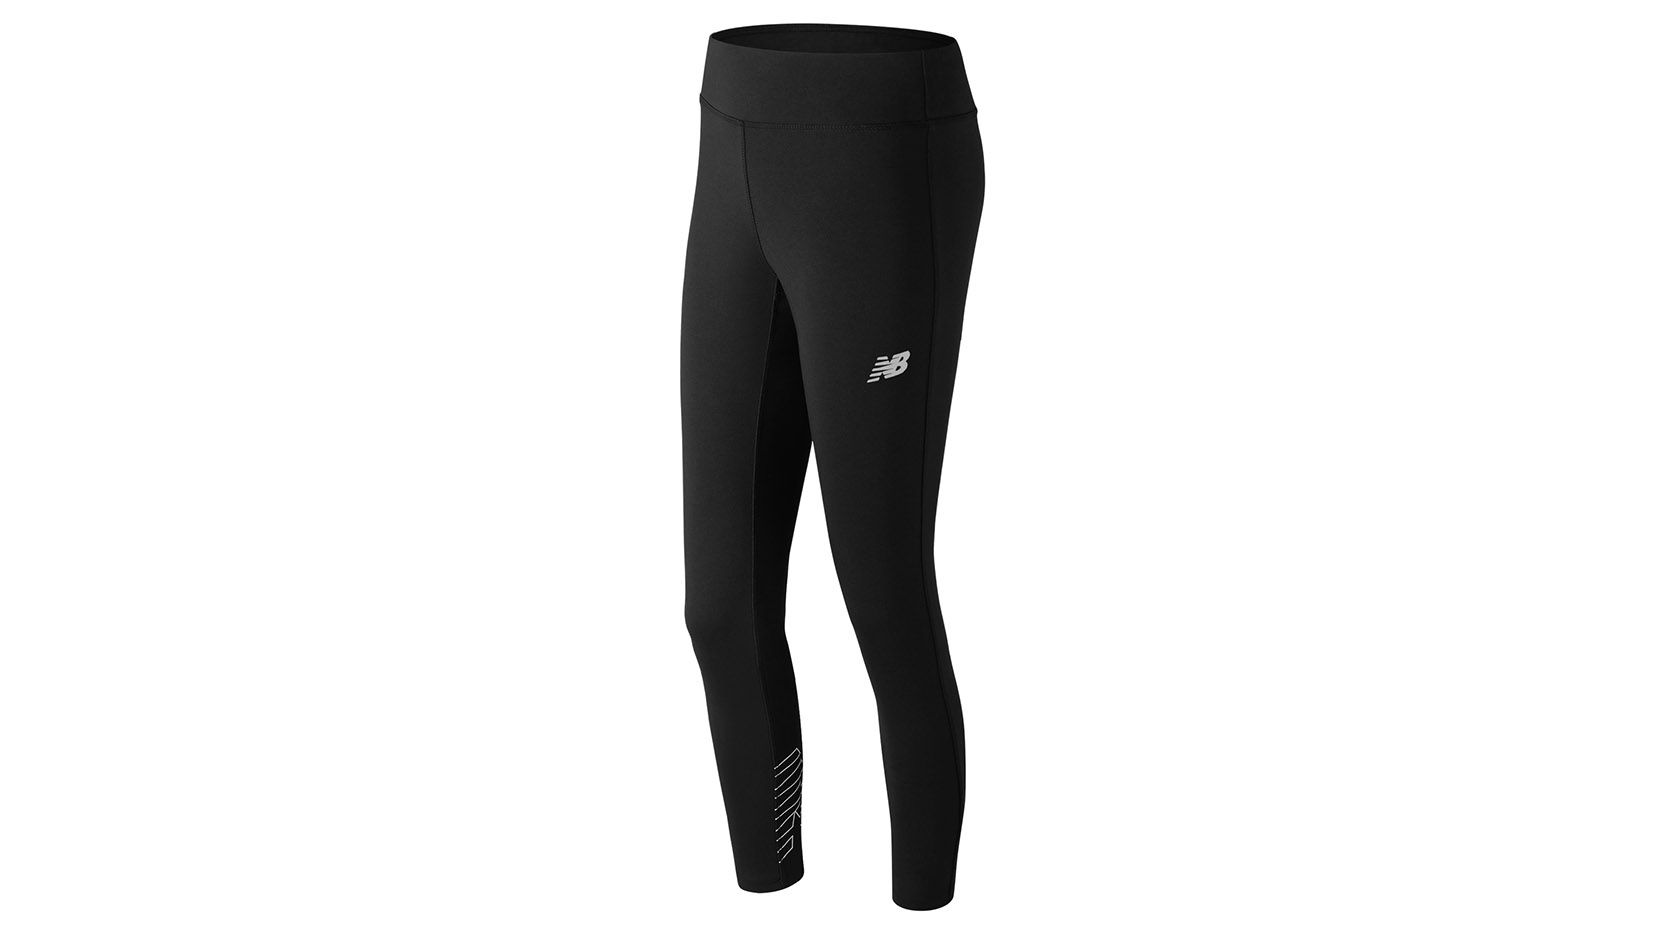 NB ATHLETICS LEGGING